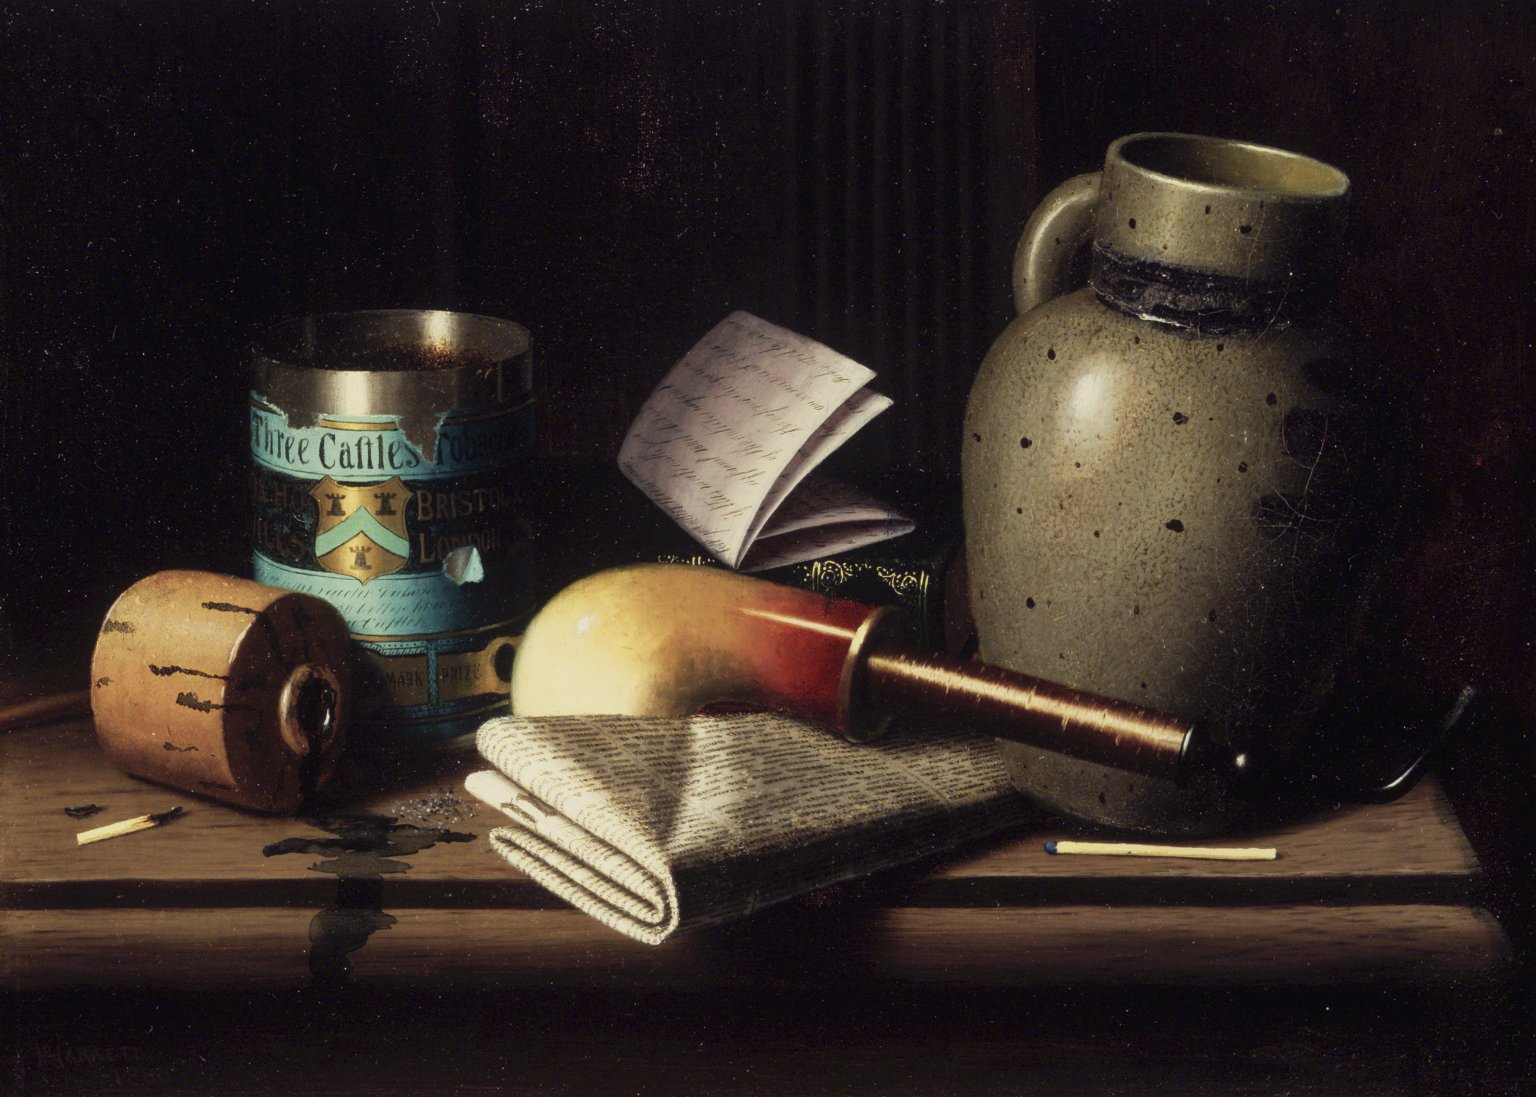 Still life painting by William Harnett made in 1880, depicting objects on a shelf,, from the left:  a used match, a toppled ink bottle with the stopper removed and ink  spilling, an open cylindrical tin of Three Castles  Tobacco, a folded handwritten document  on top of an embossed book (the book barely visible in the background), a clay tobacco pipe, a folded newspaper , a grey ceramic pitcher and an unused match  near the front right side esge of the shelf.